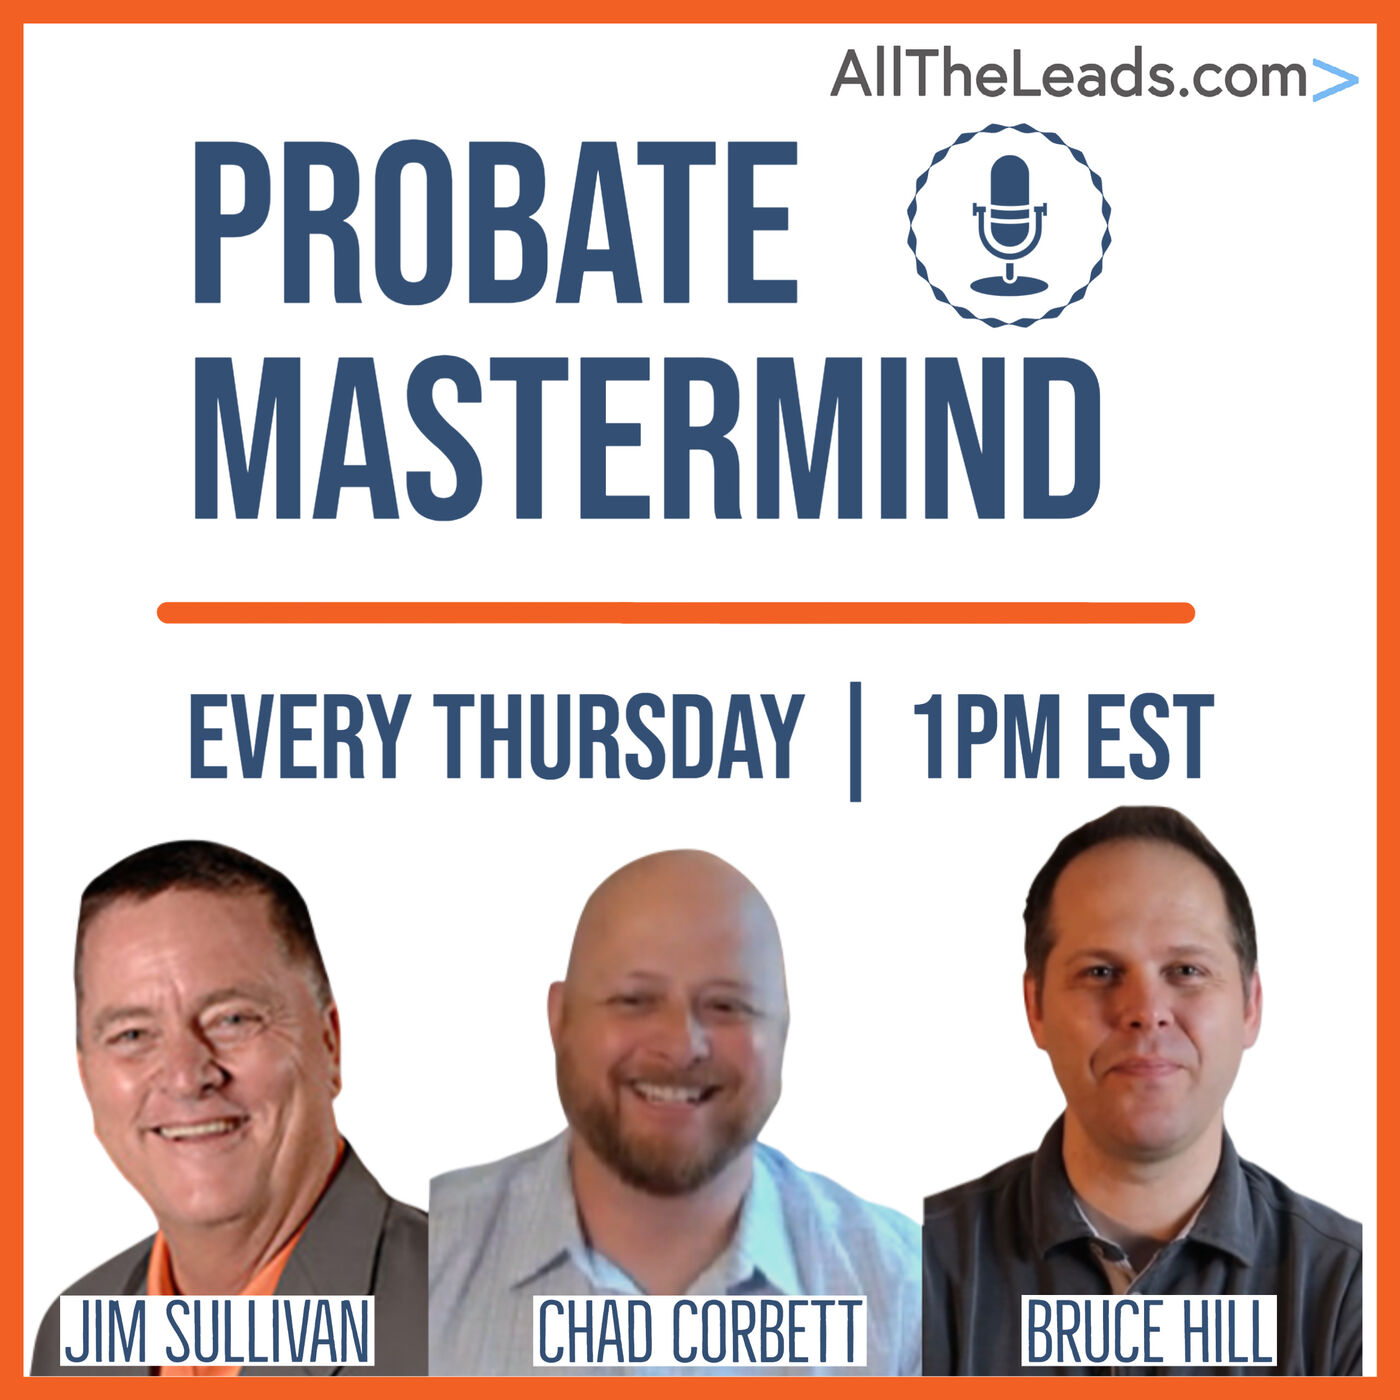 Cold Call Tricks for Common Objections | Wholetaling vs Wholesaling and How COVID is Impacting Investment Strategy |  PLUS 15 More Real Estate Q&As. Probate Mastermind Real Estate Podcast #298